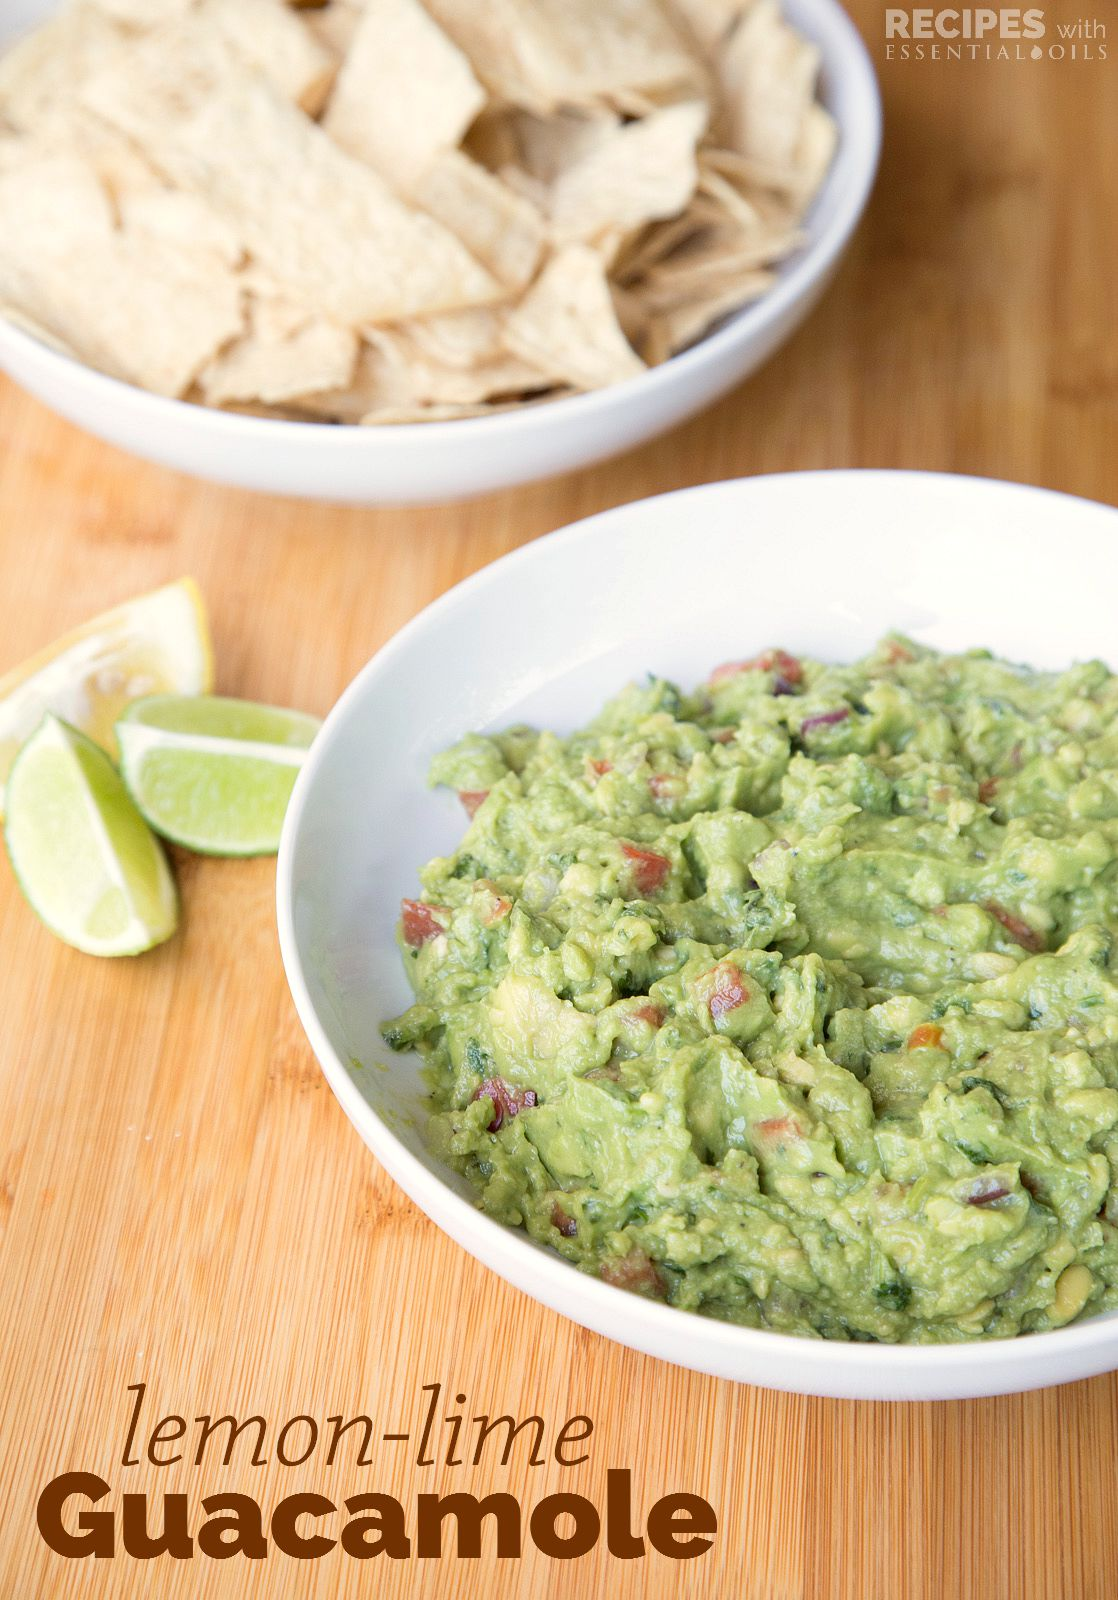 Homemade lemon lime guacamole recipes with essential oils homemade lemon lime guacamole from recipeswithessentialoils forumfinder Gallery